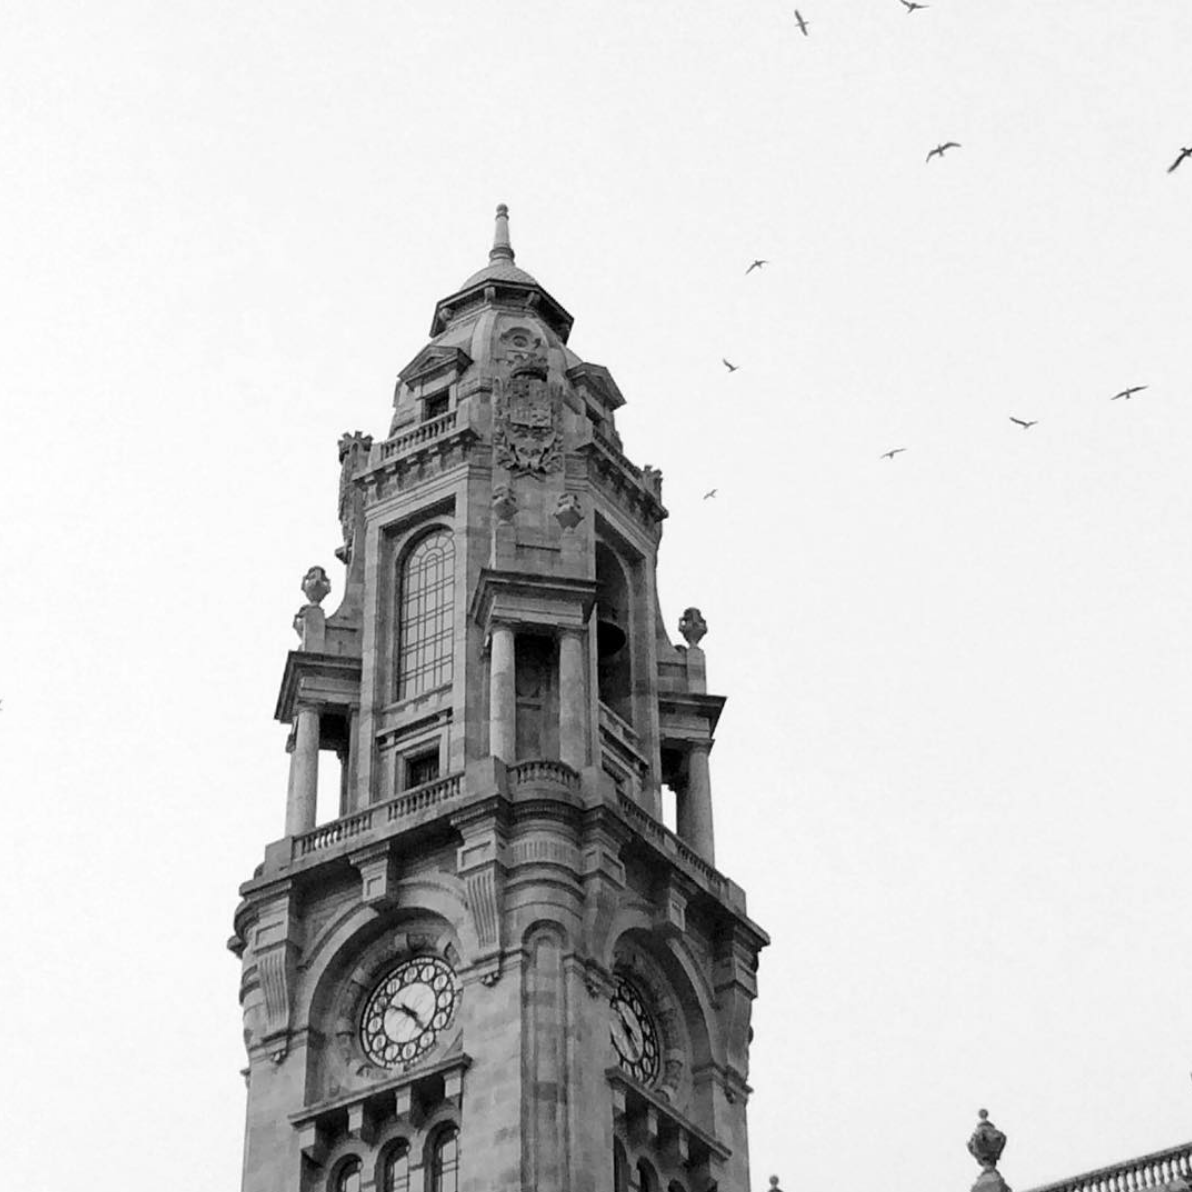 Torre dos clerigos with birds flying in Porto, Portugal